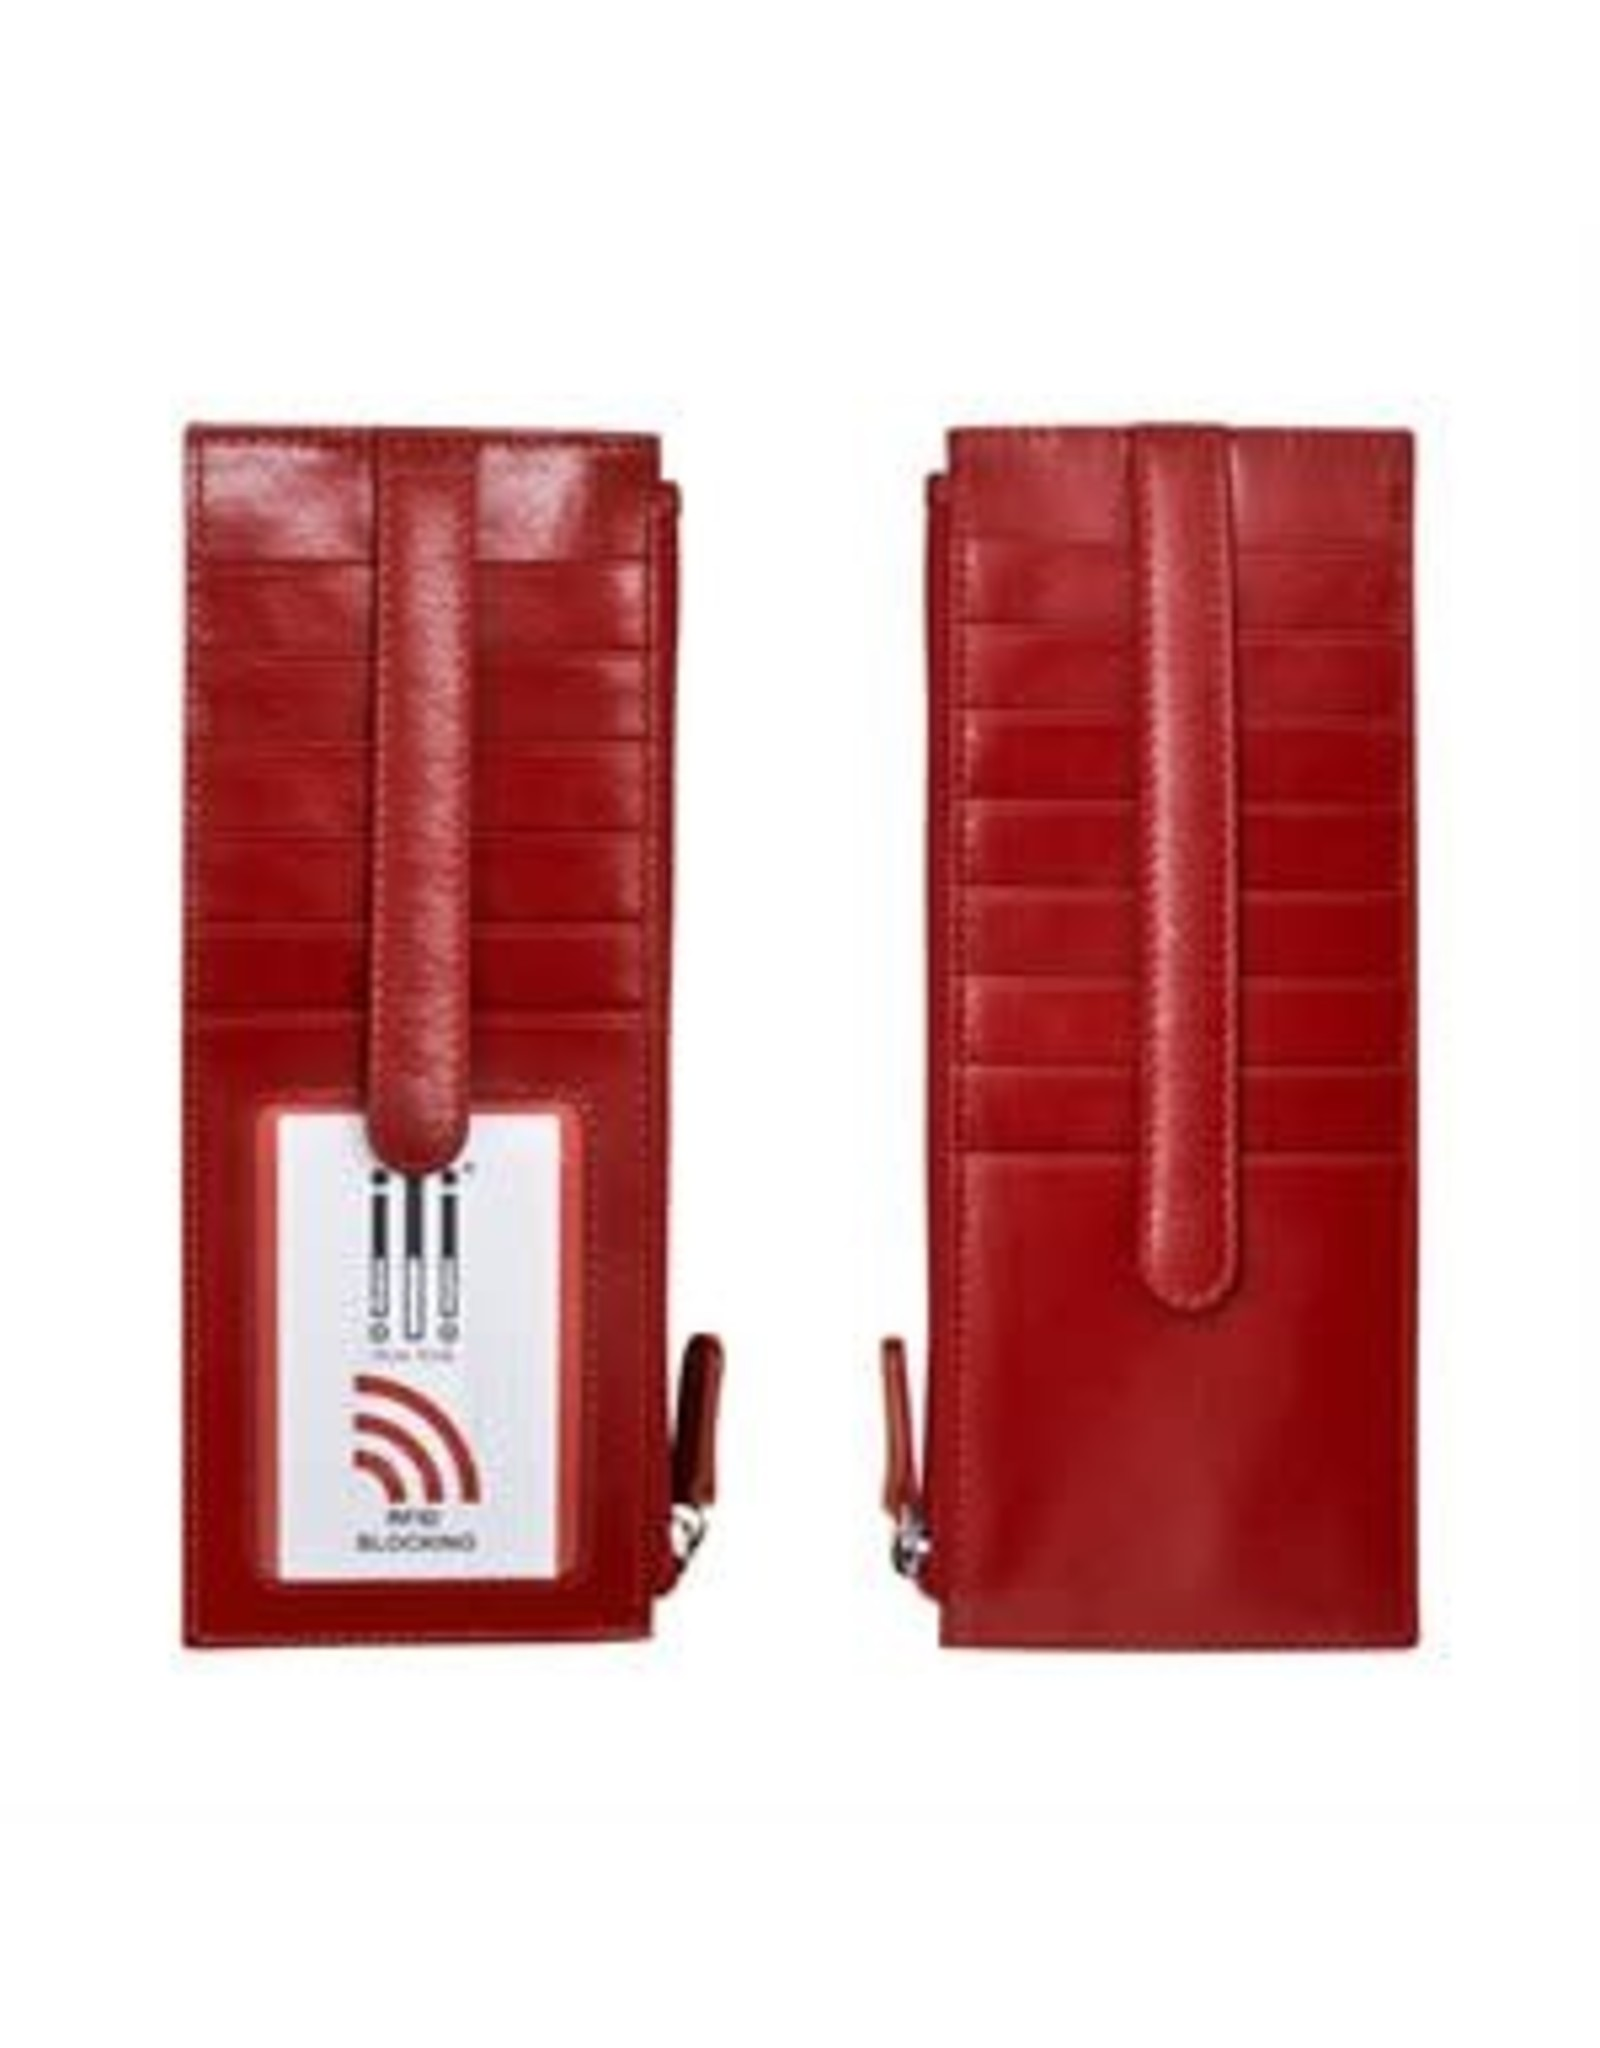 Leather Handbags and Accessories 7800 Red - RFID Card Holder